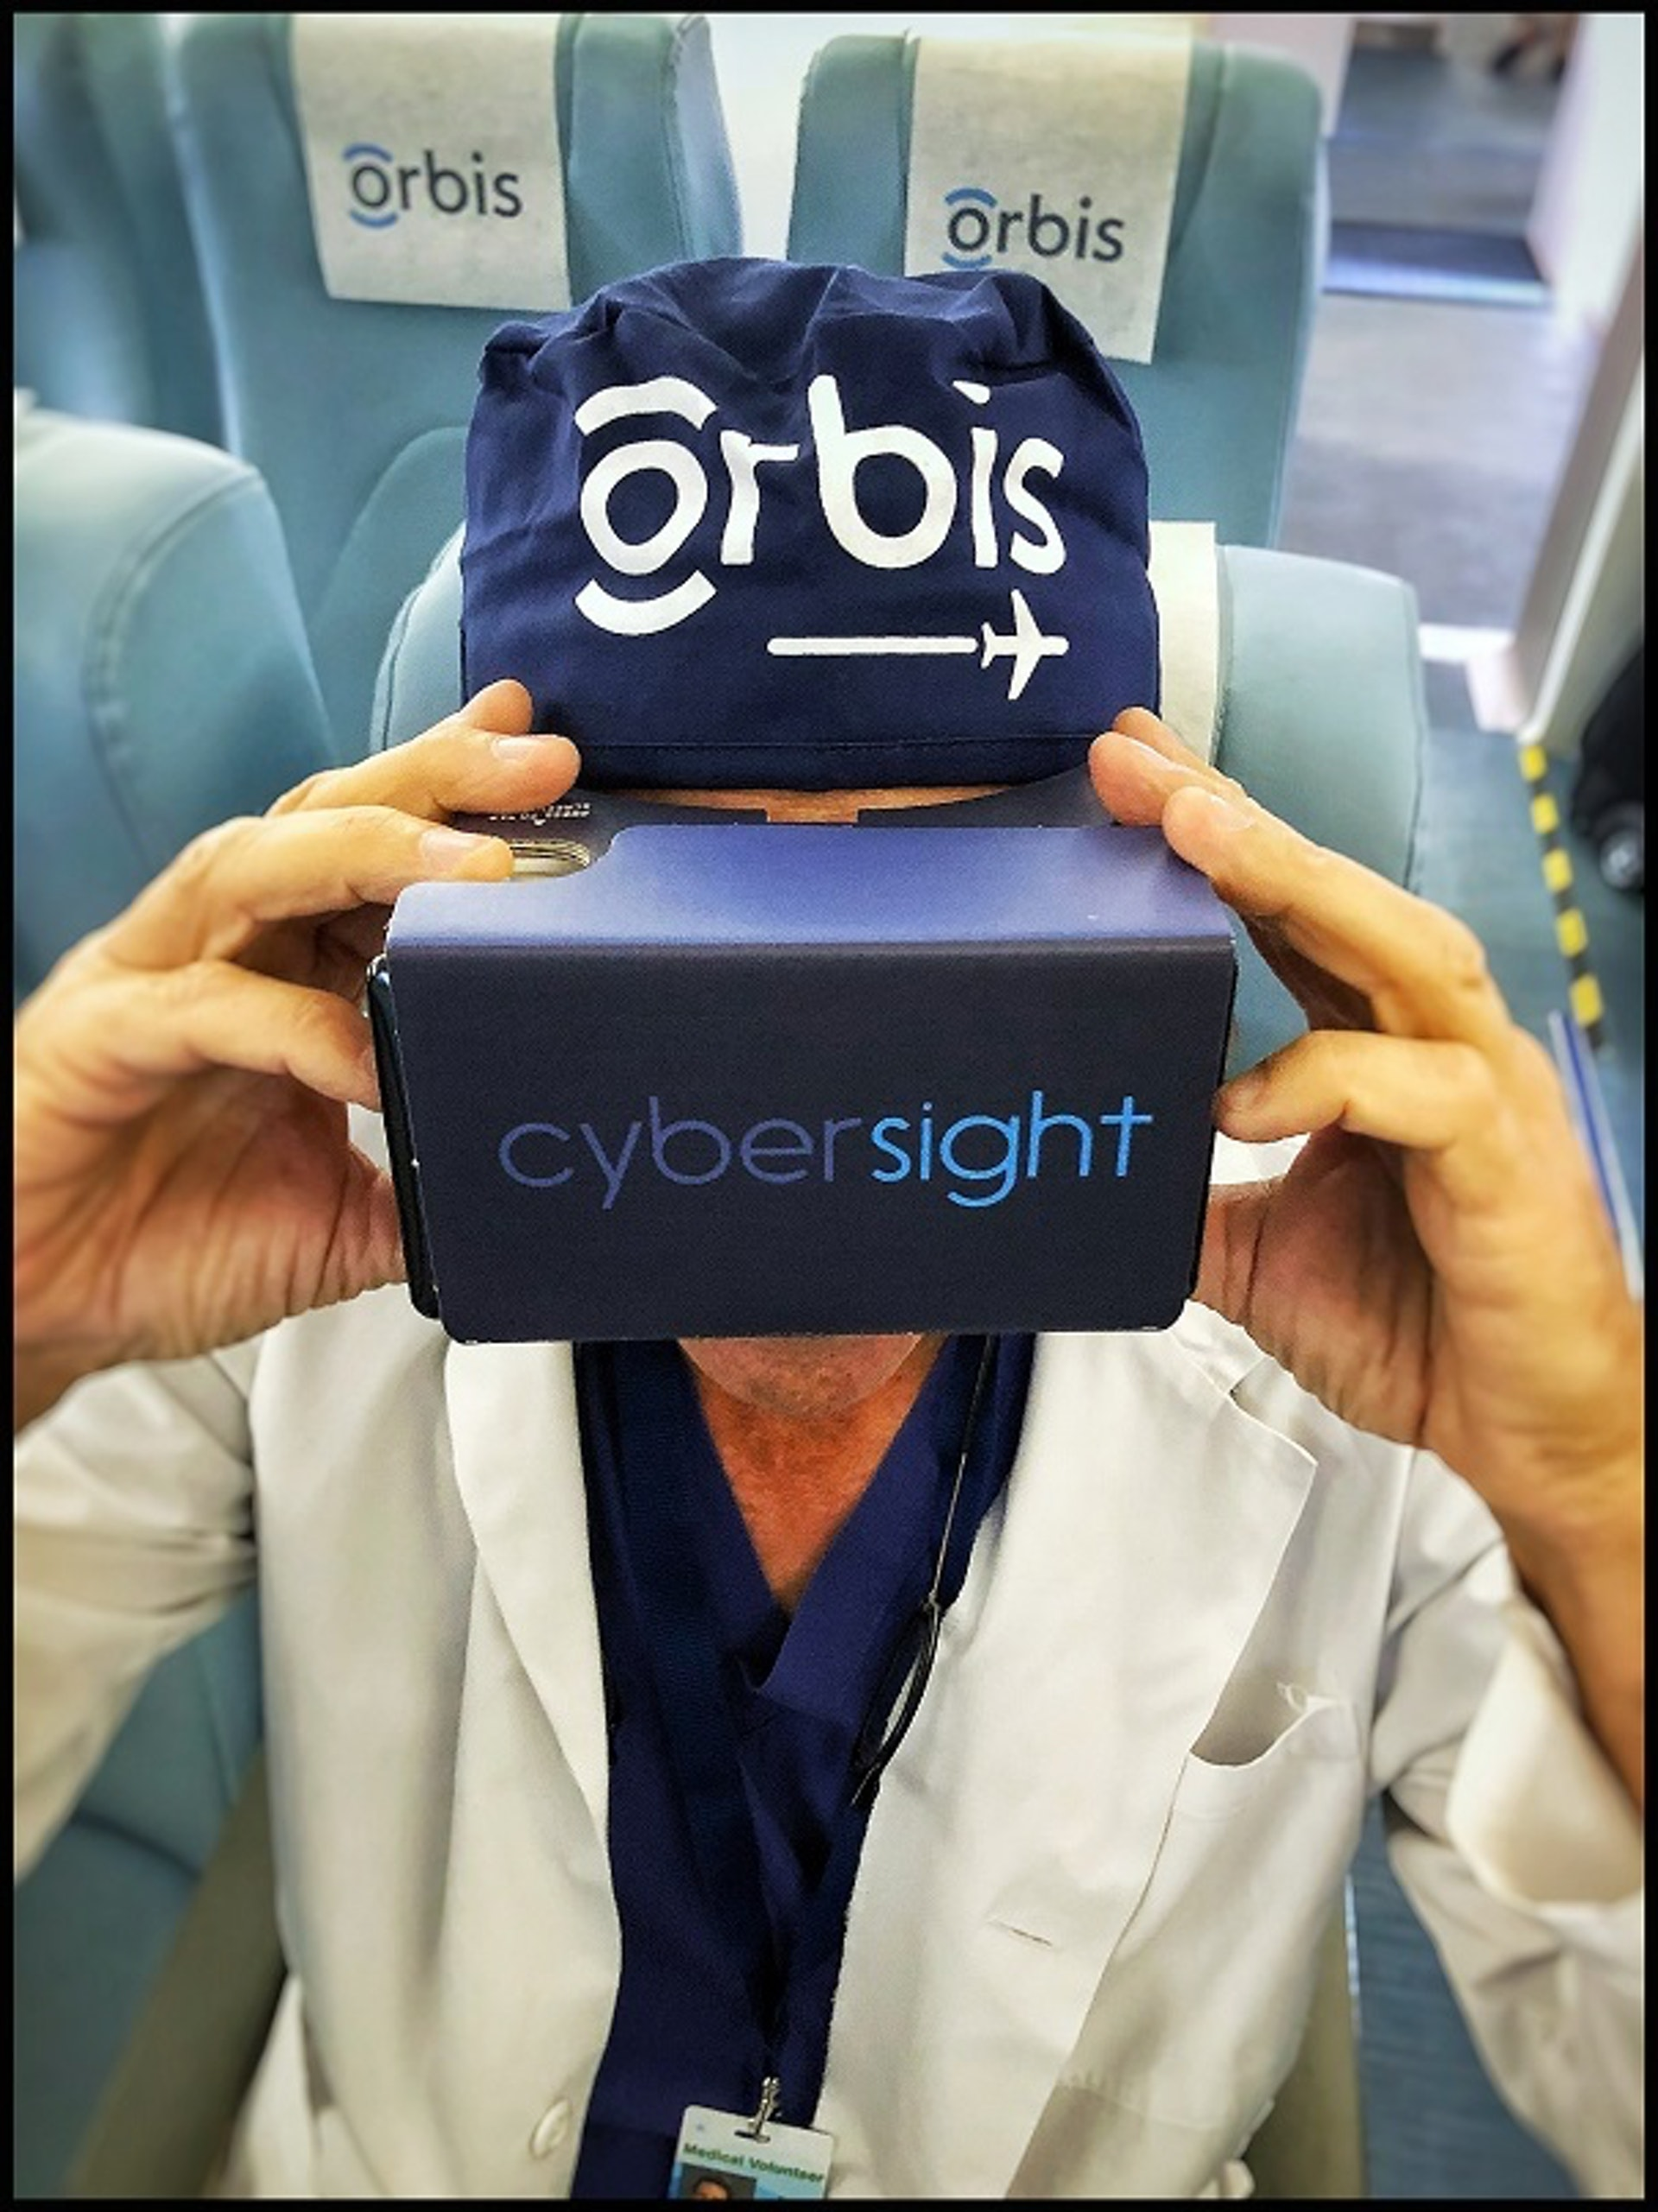 Dr. Daniel Neely using VR goggles for eye health training